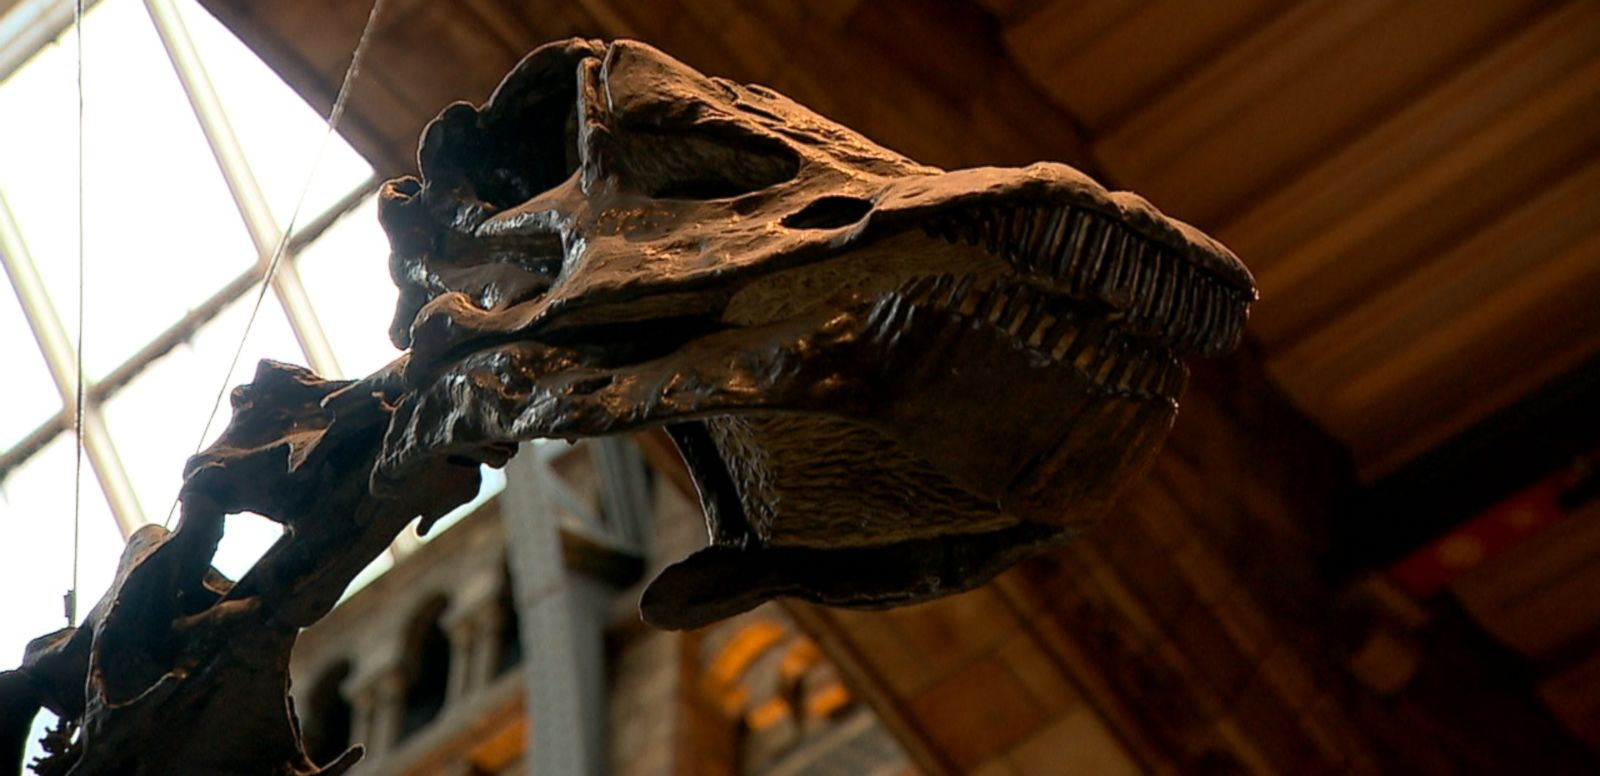 VIDEO: Fans of the diplodocus skeleton cast turned to social media to protest the planned removal of the beloved dinosaur from the entrance of London's Natural History Museum.